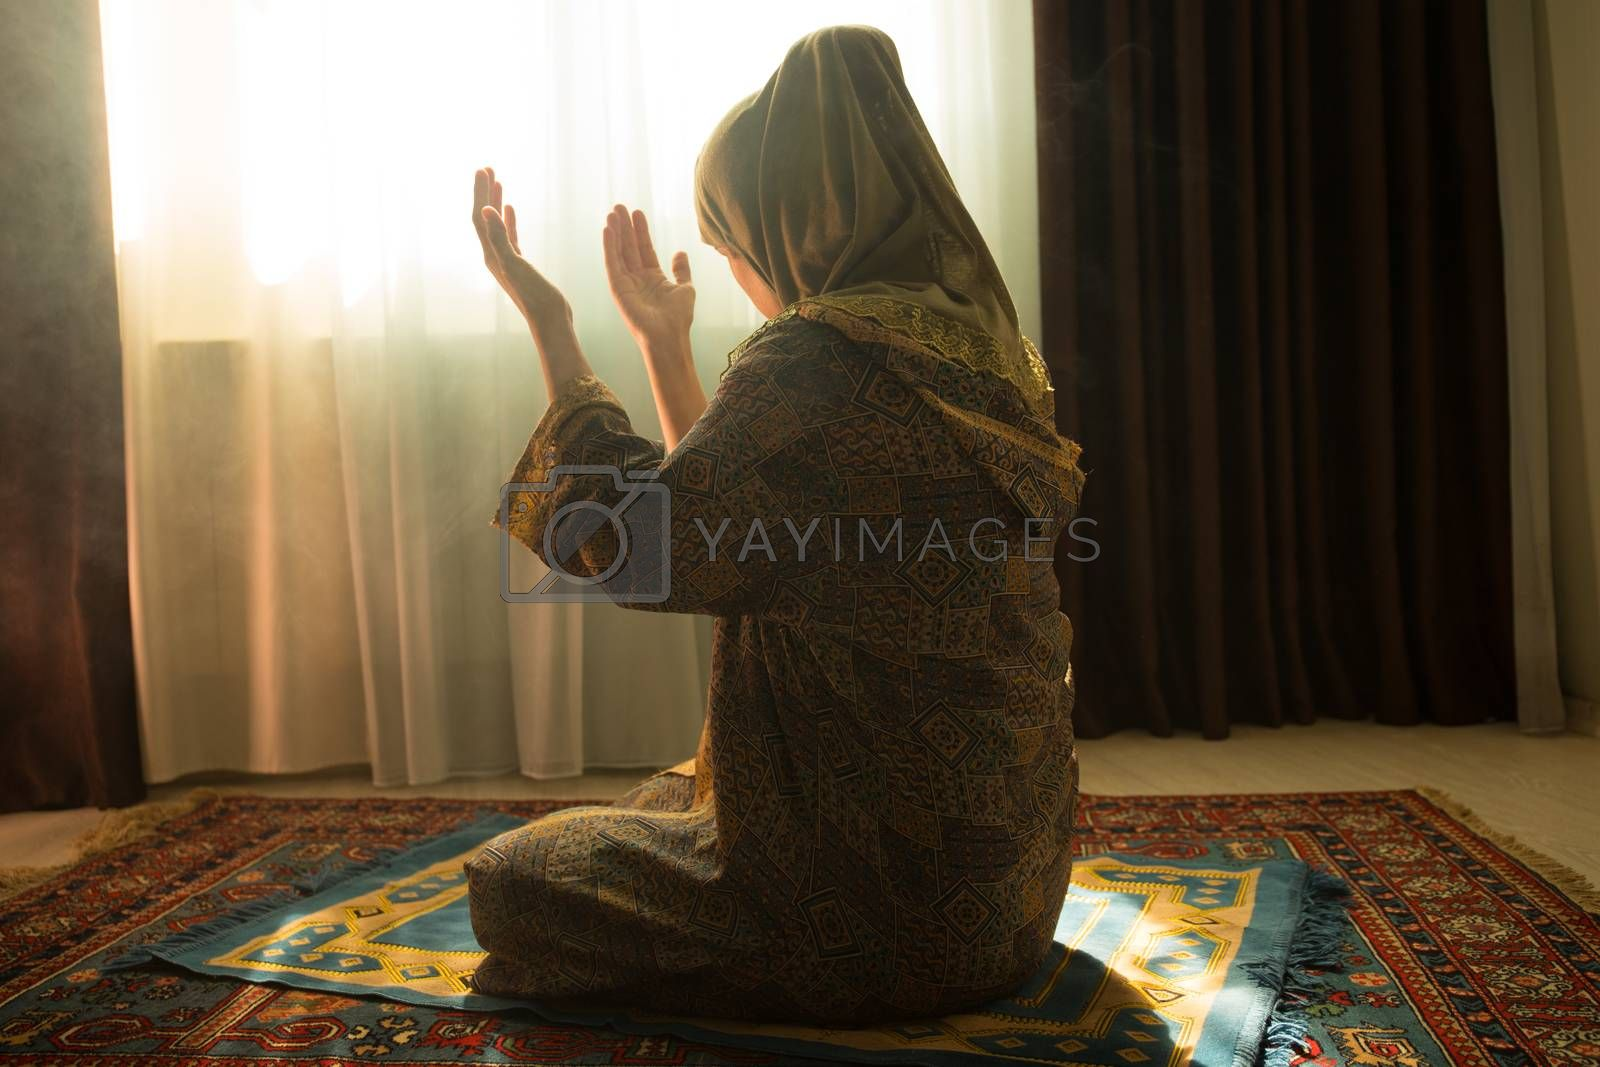 Muslim woman praying for Allah muslim god at room near window. Hands of muslim woman on the carpet praying in traditional wearing clothes, Woman in Hijab, Carpet of Kaaba, Selective focus